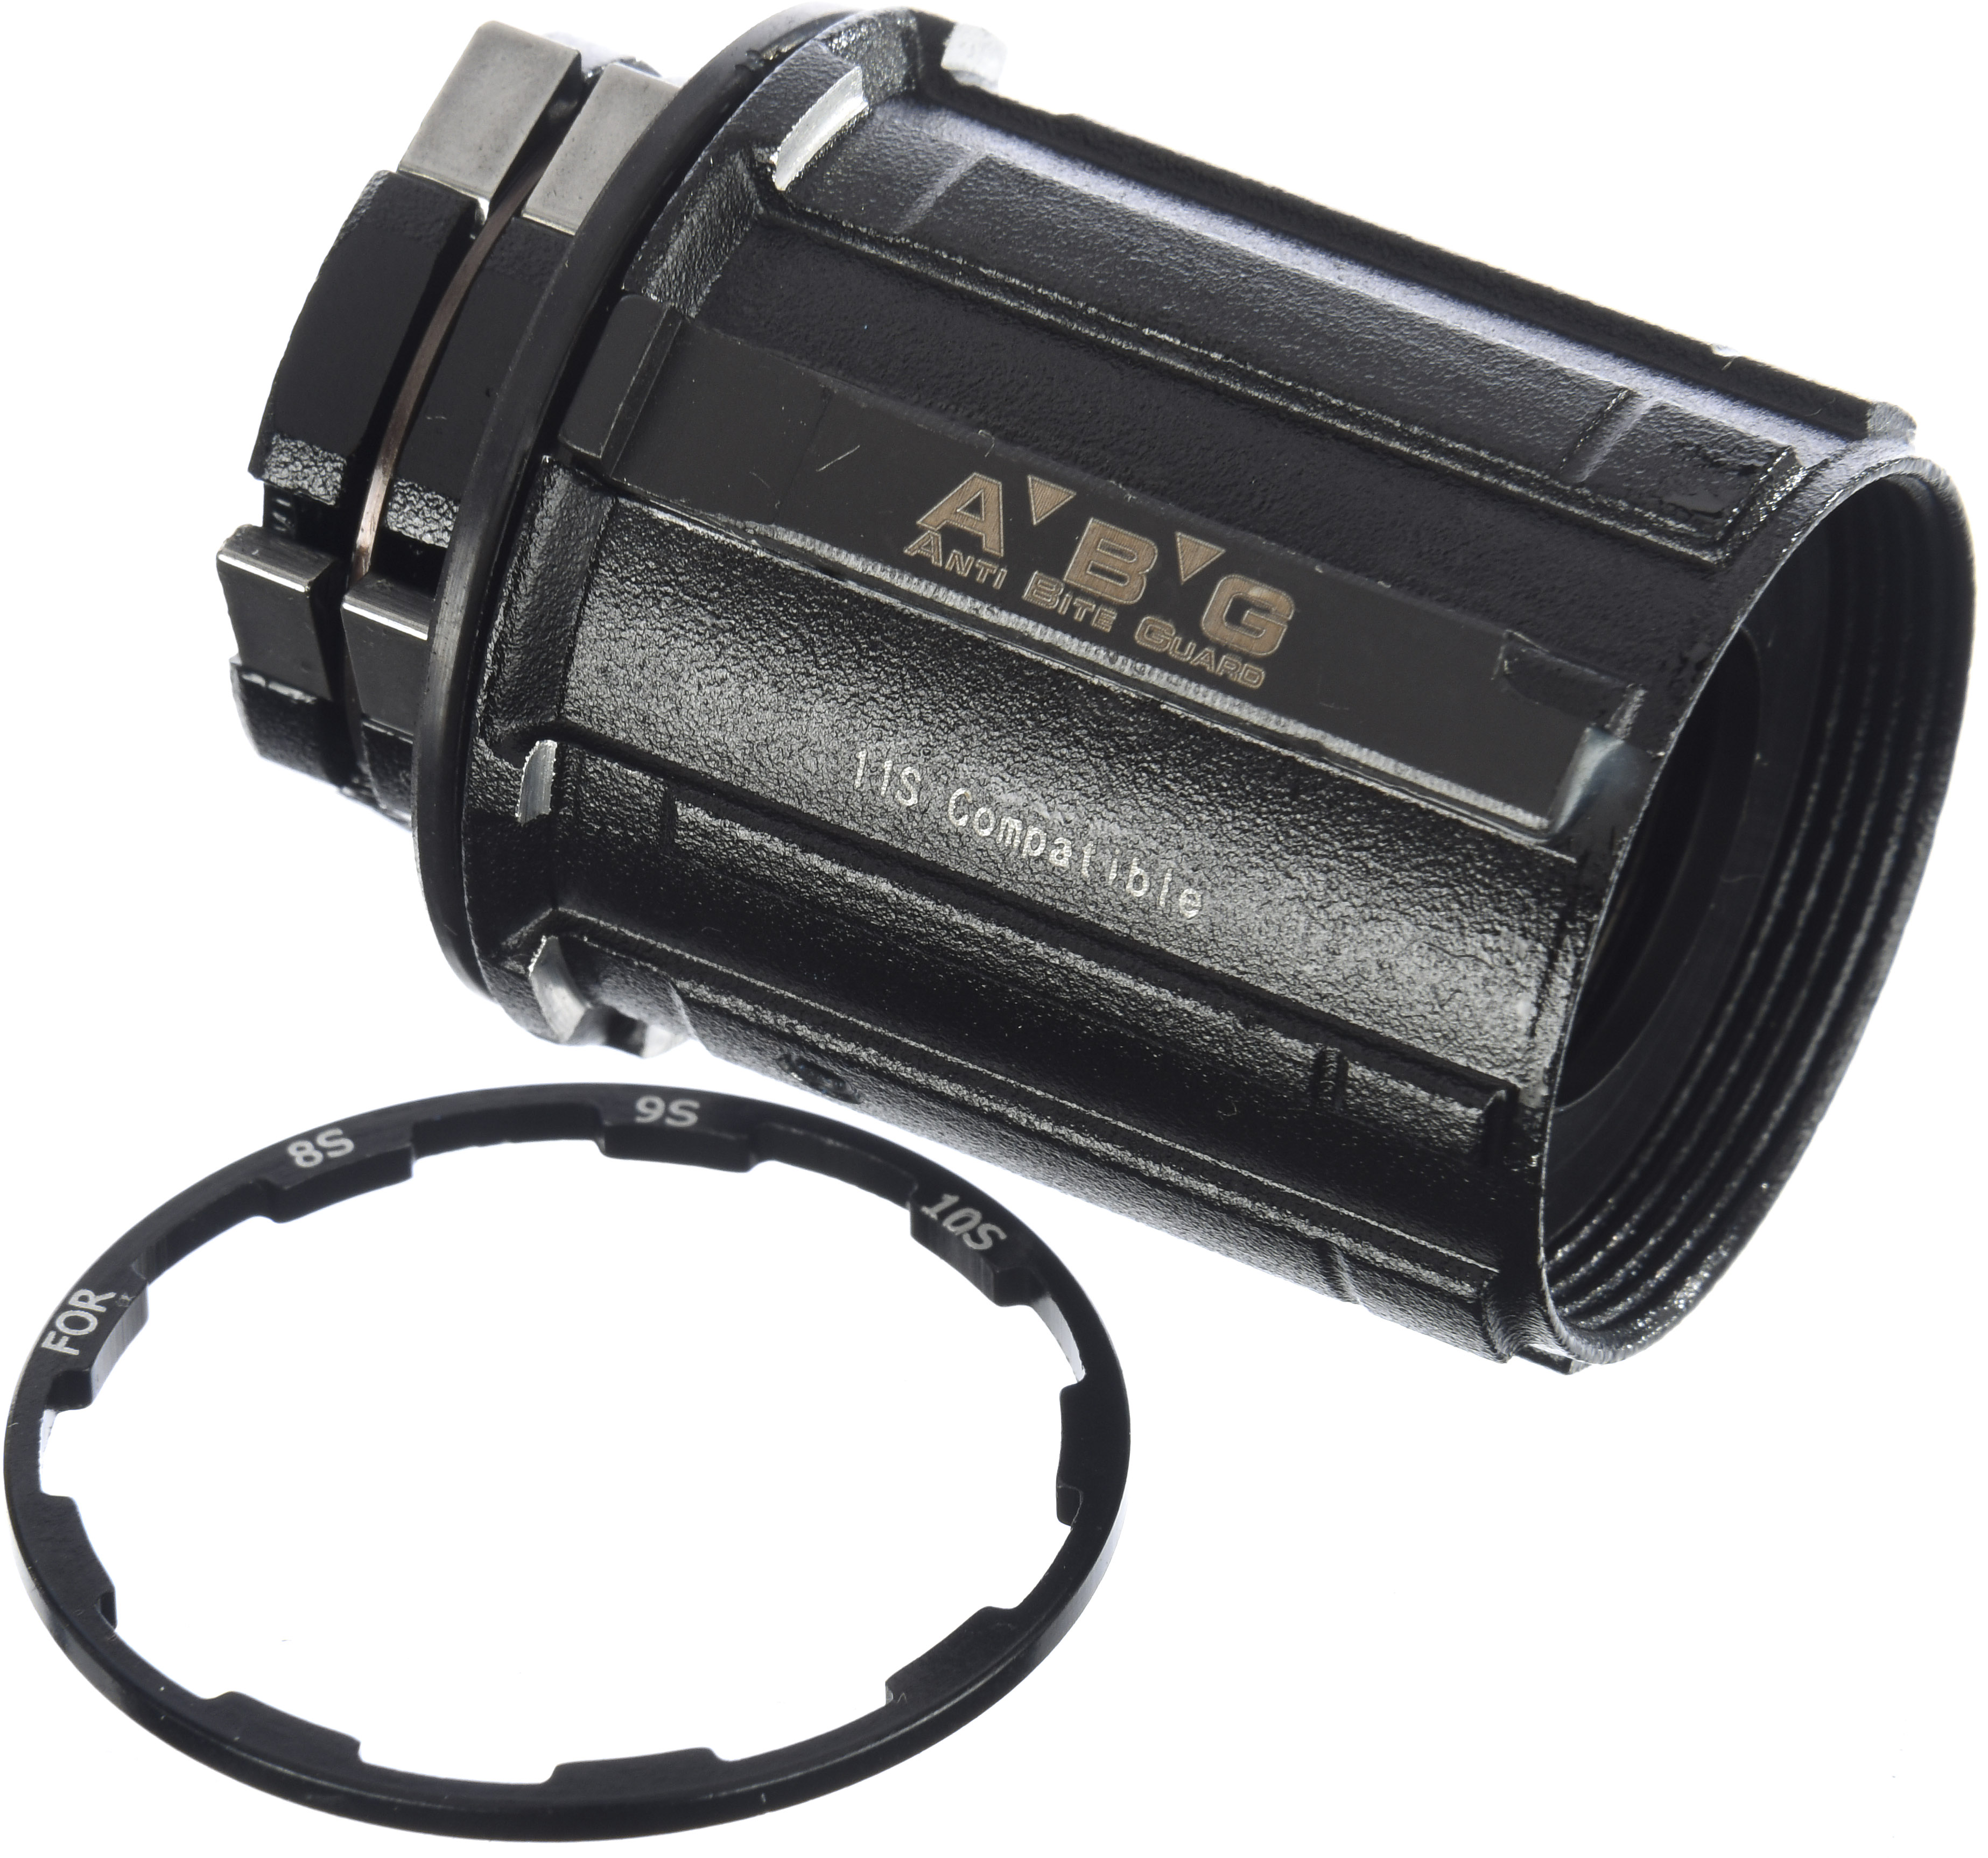 Prime R020 Freehub Body - ABG | Freehub body